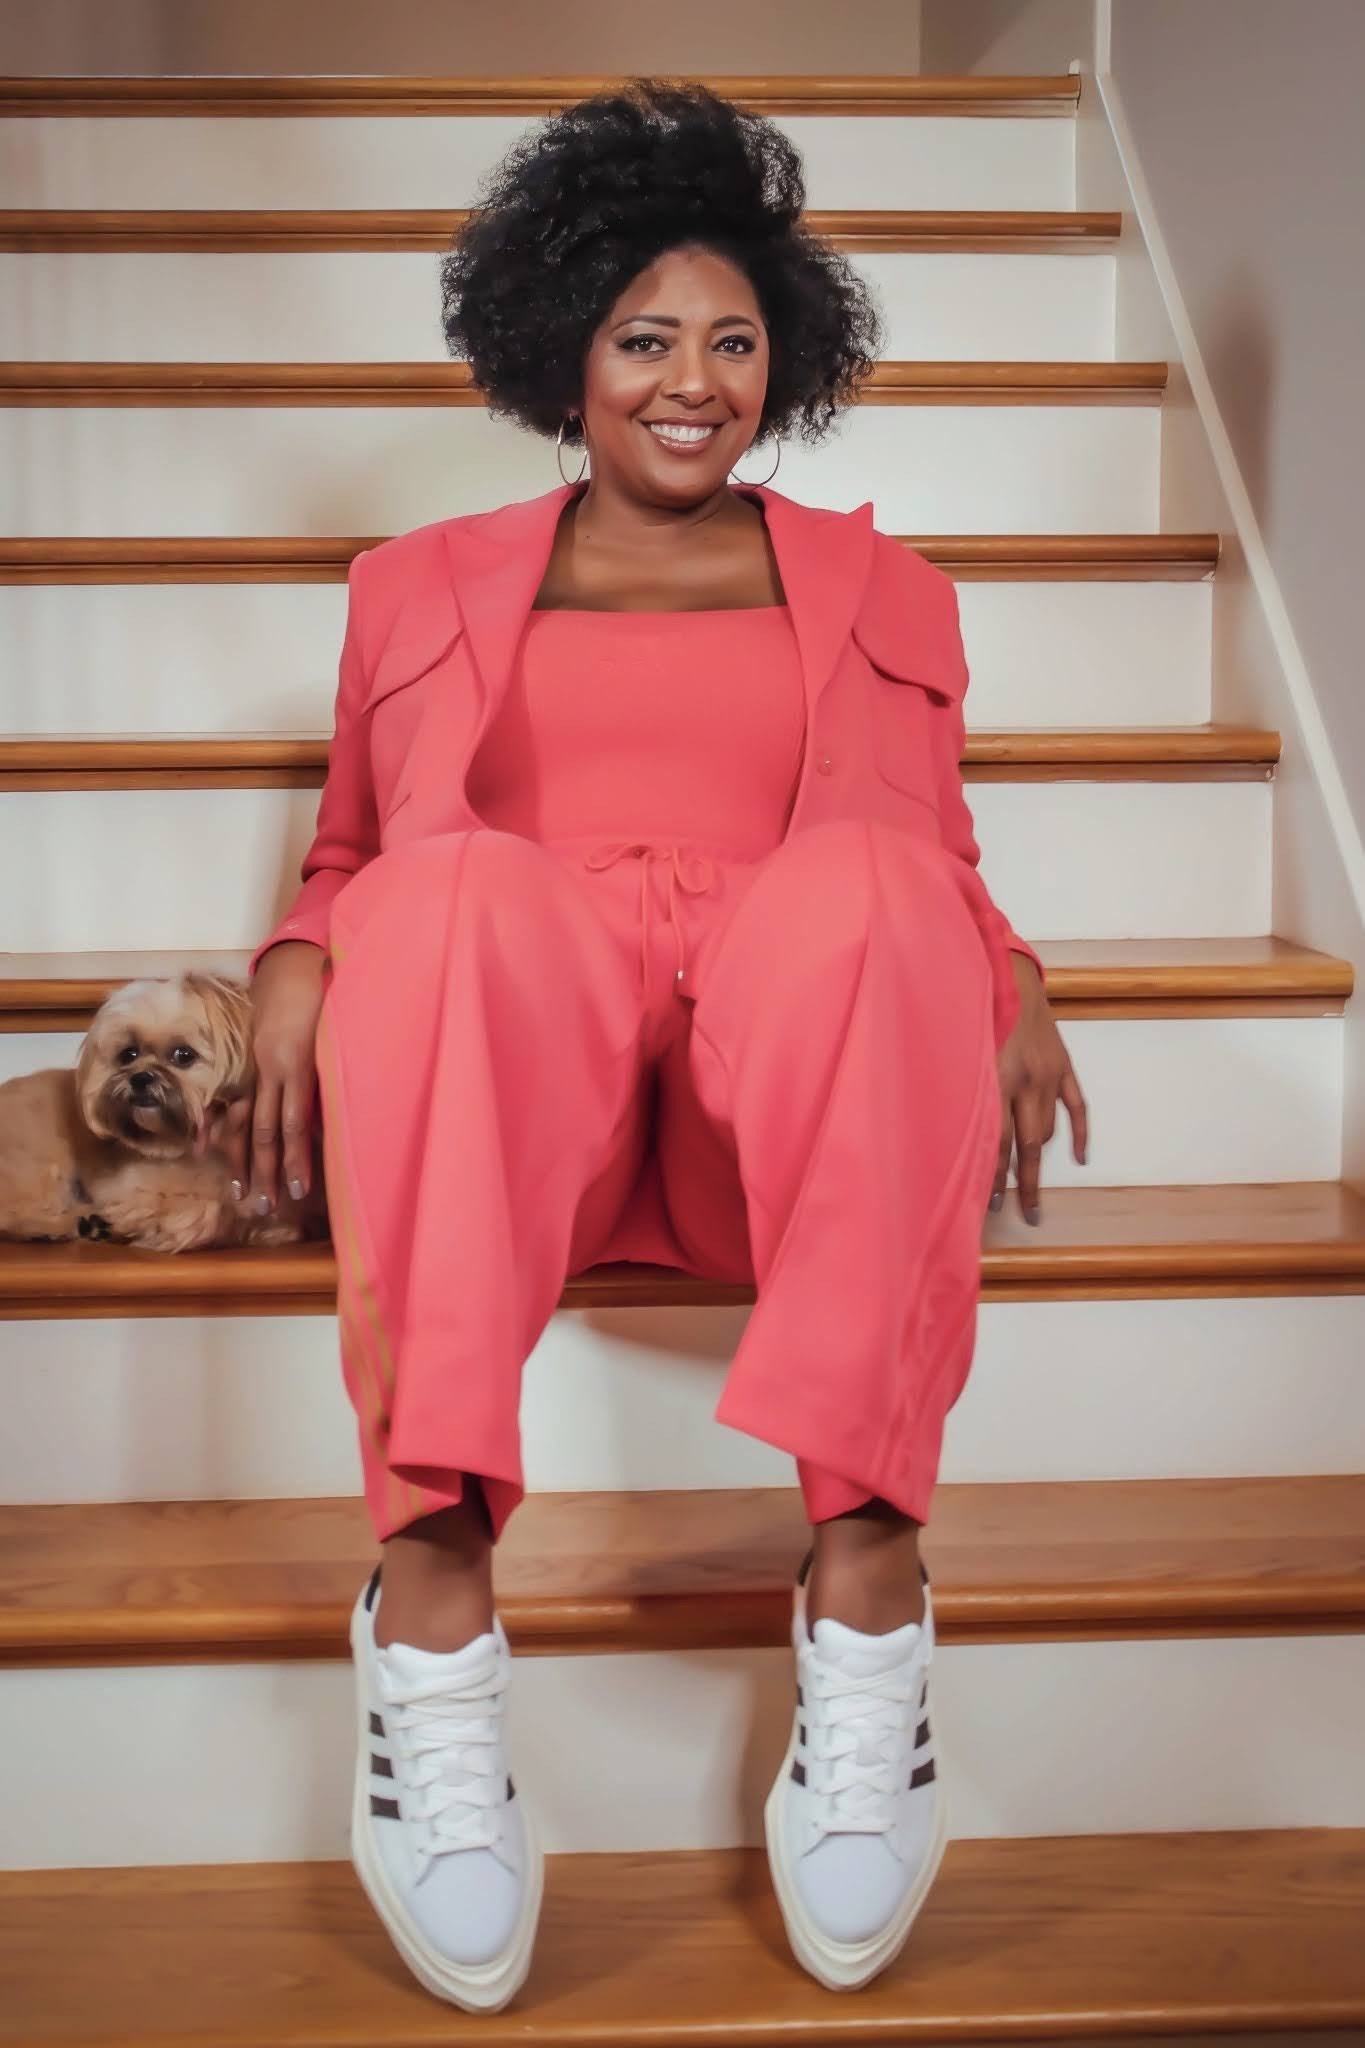 Woman wearing a pink suit sitting on stairs smiling, Vicky Free, marketing, adidas, employee, leadership, leaders, women